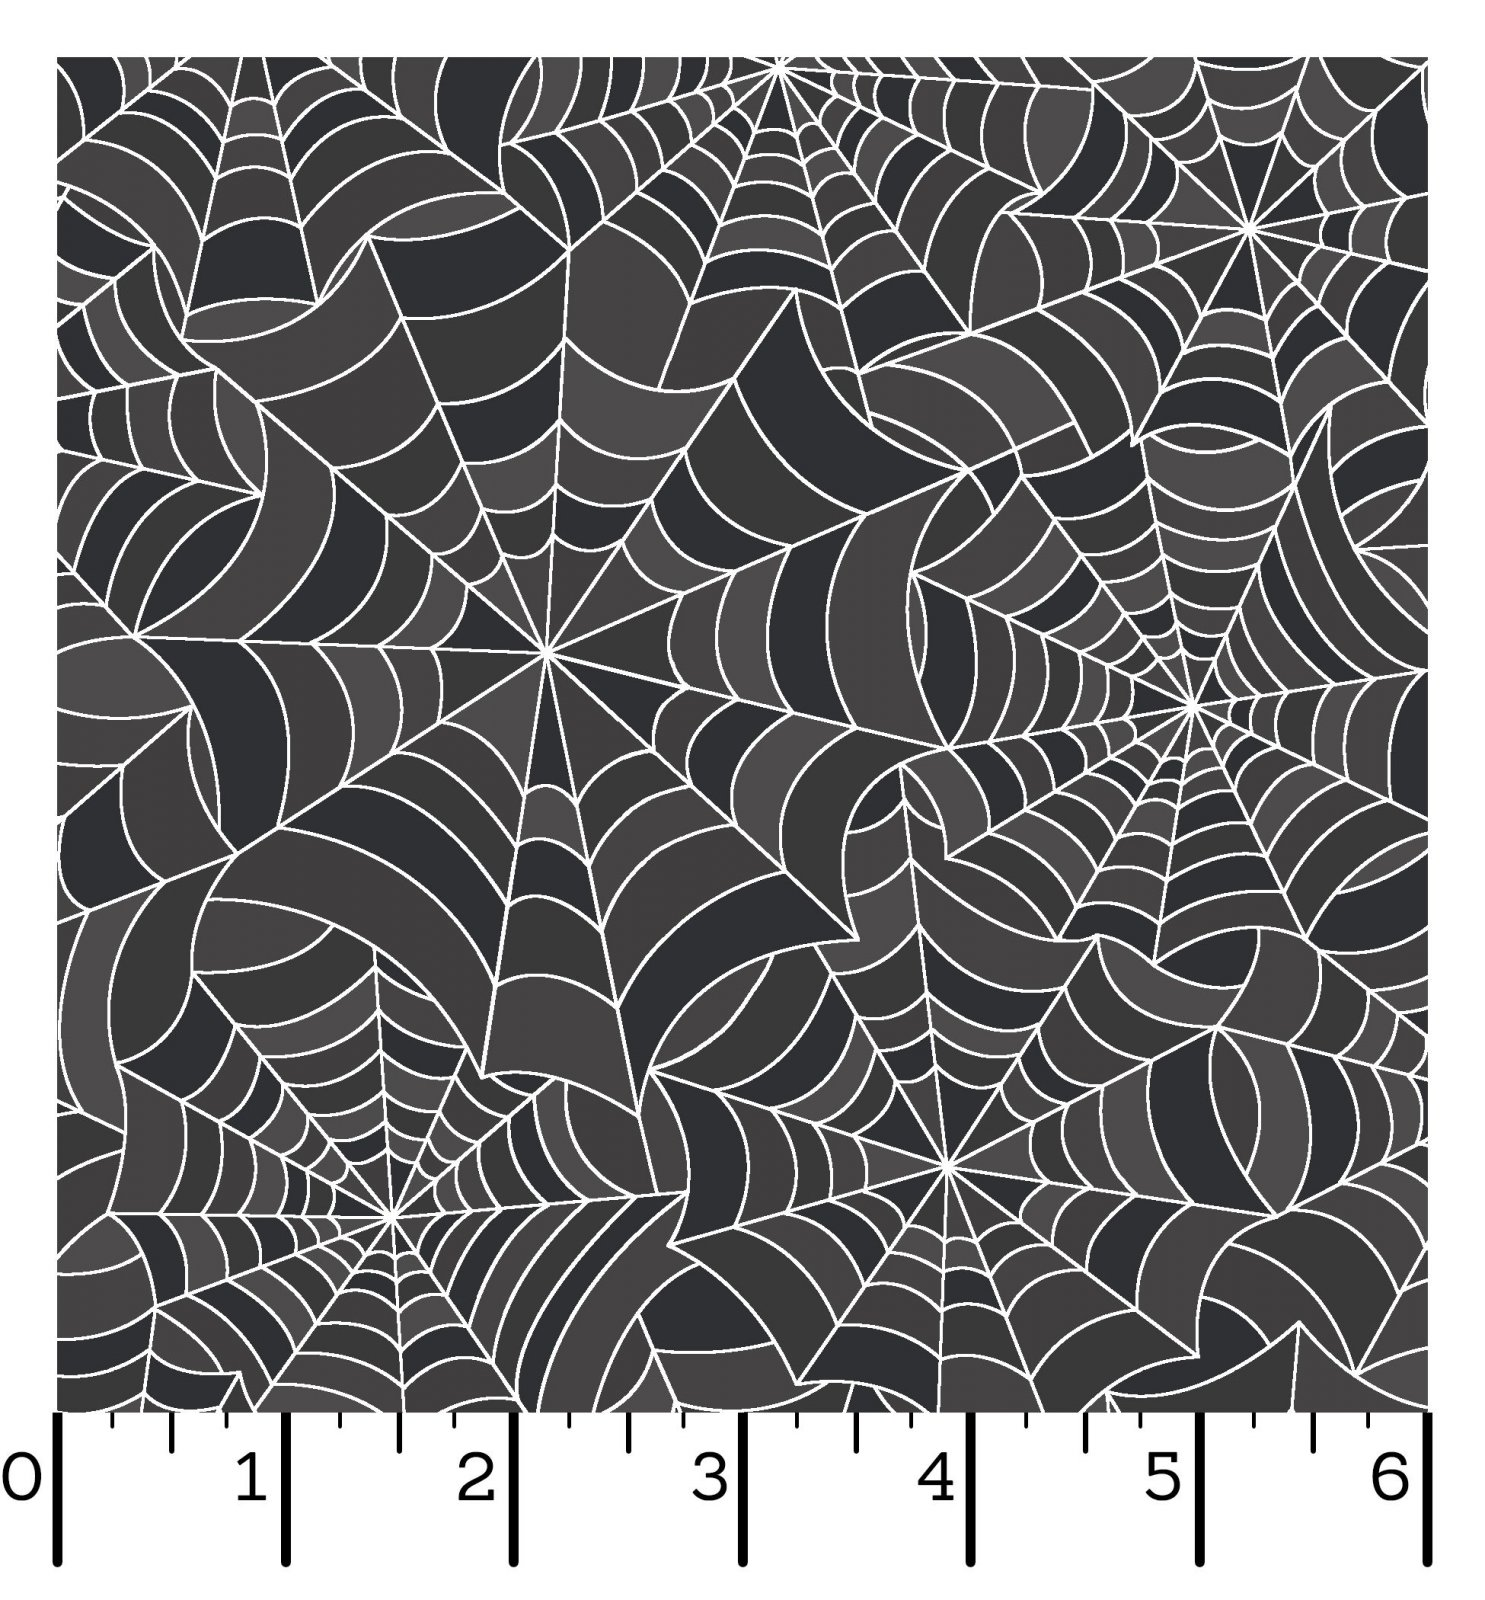 EESC-9923 K - HOMETOWN HALLOWEEN BY KIMBERBELL SPOOKY WEBS CHARCOAL - ARRIVING IN JULY 2021